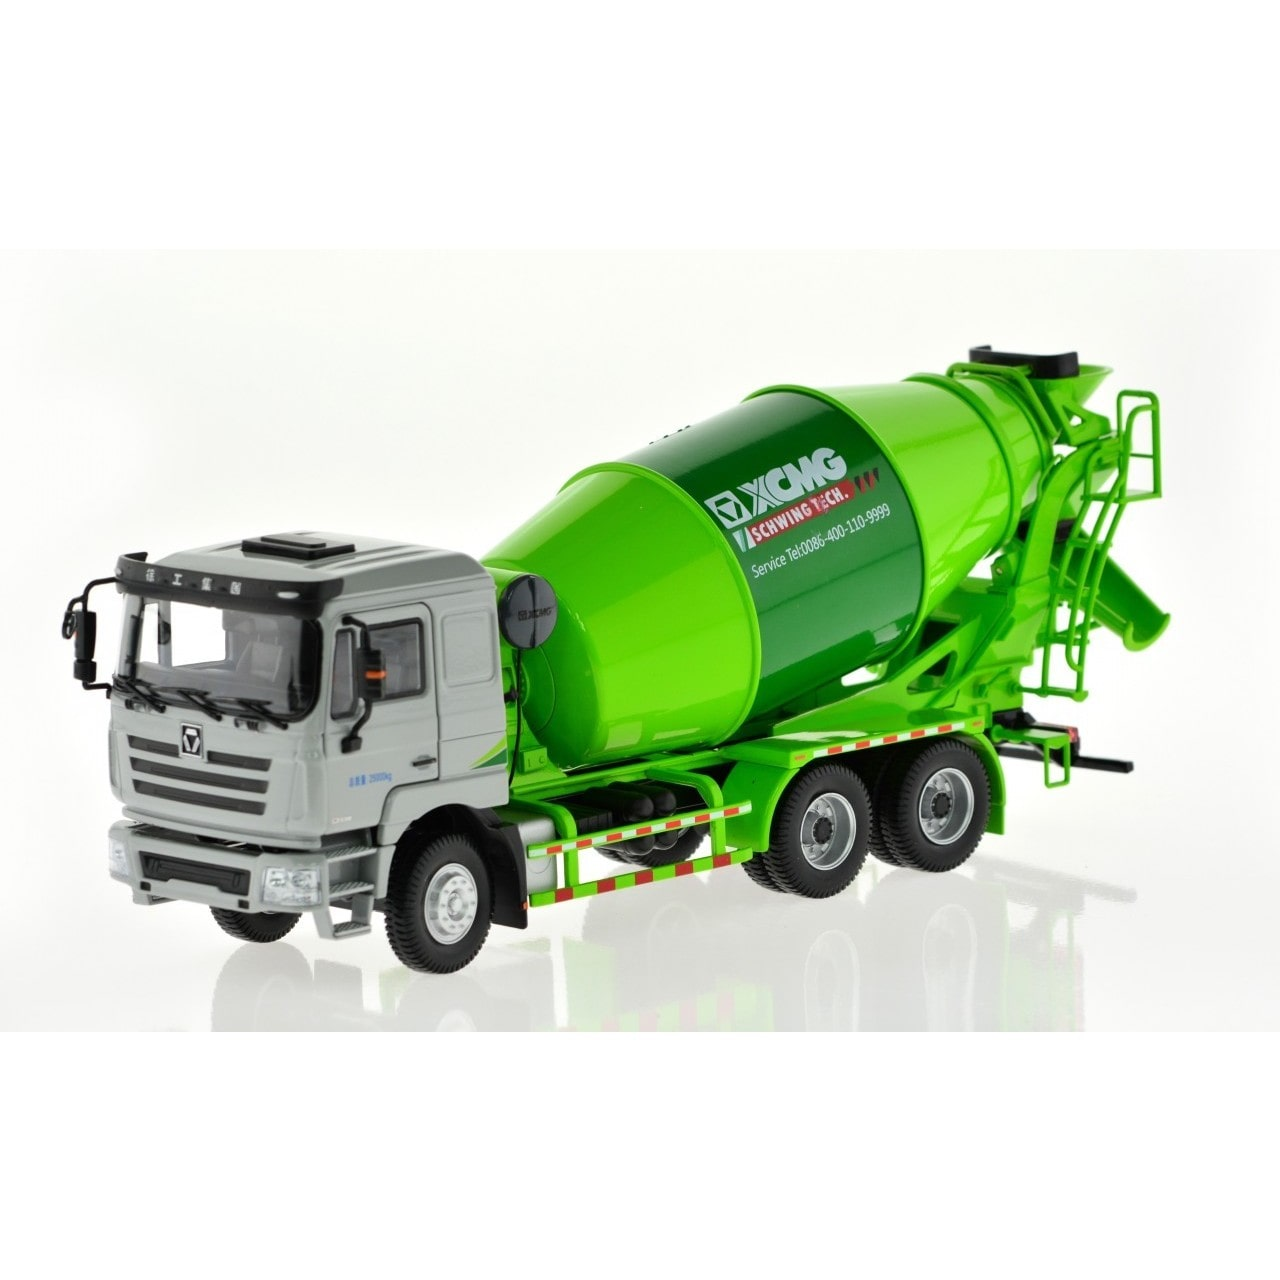 CIS Schwing Green Small Concrete Mixer Truck by Overstock